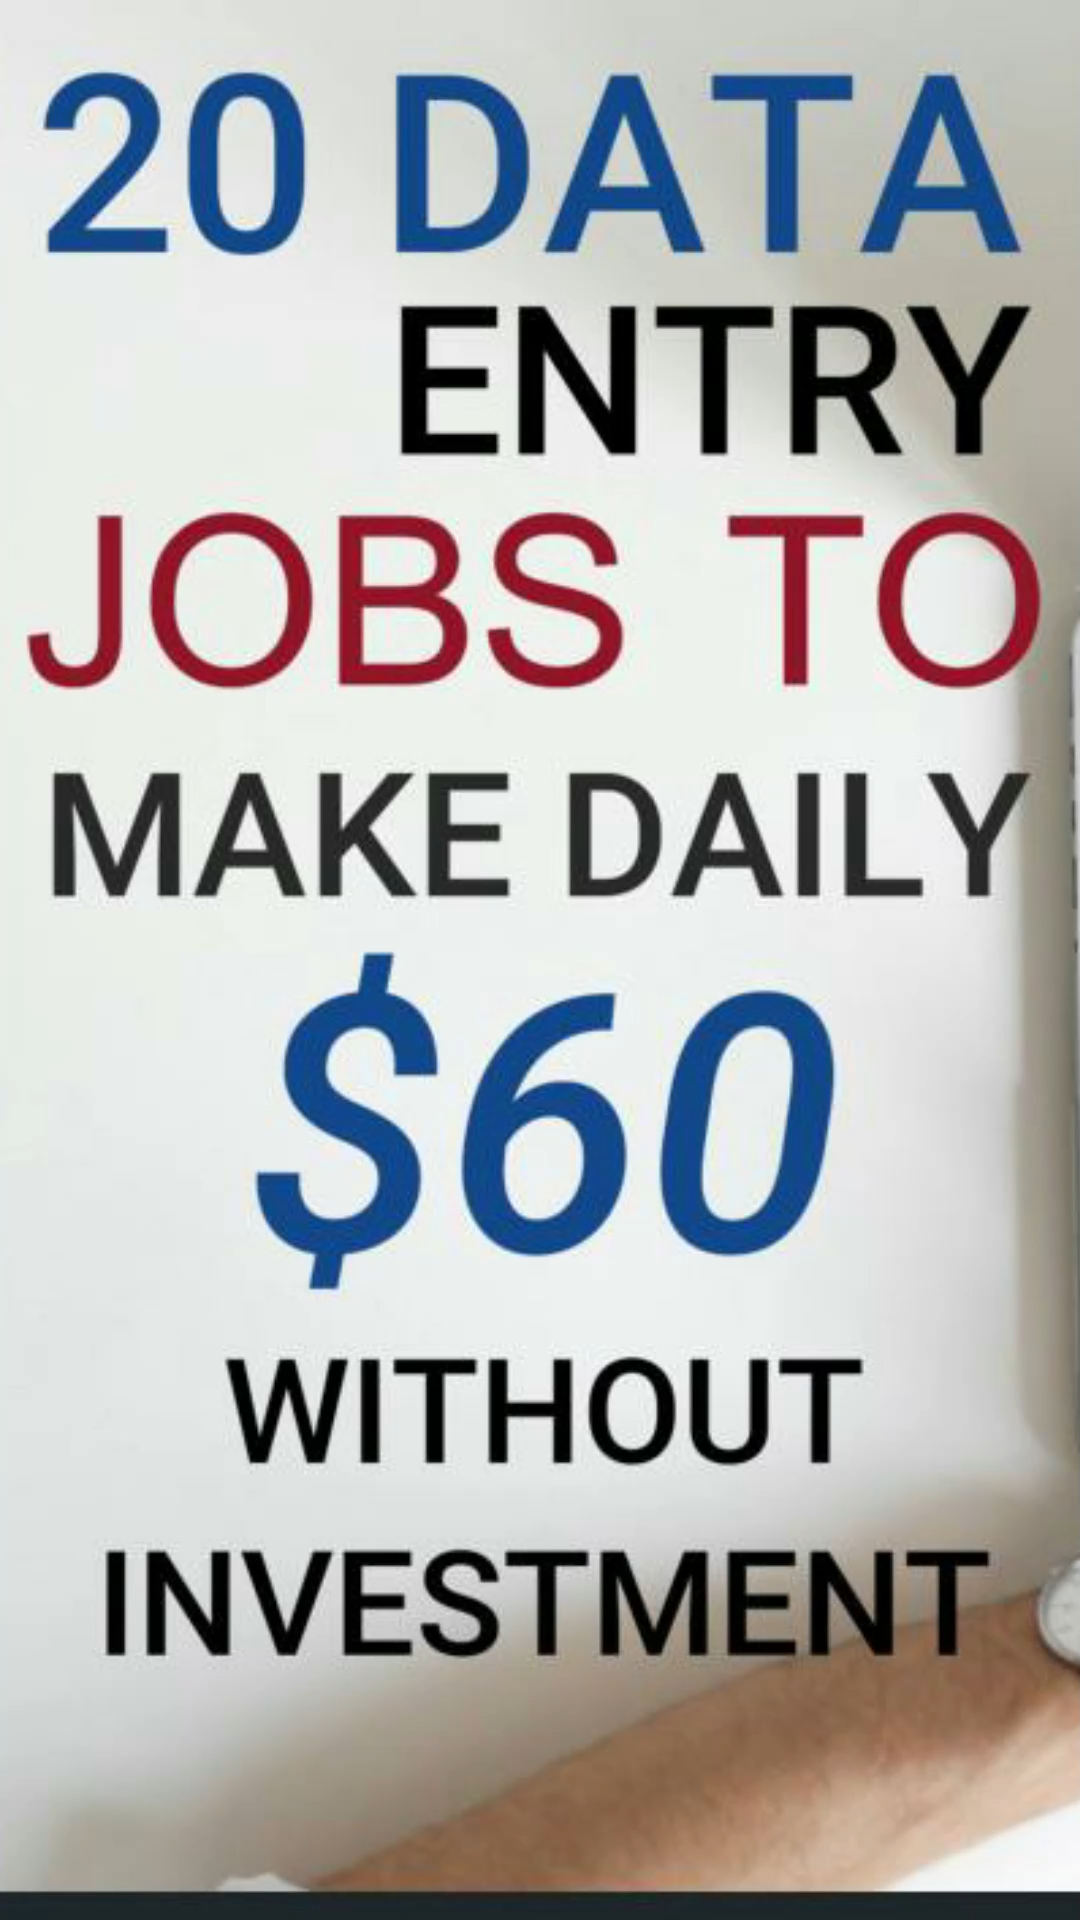 20 Data Entry Jobs To Make $60 Daily